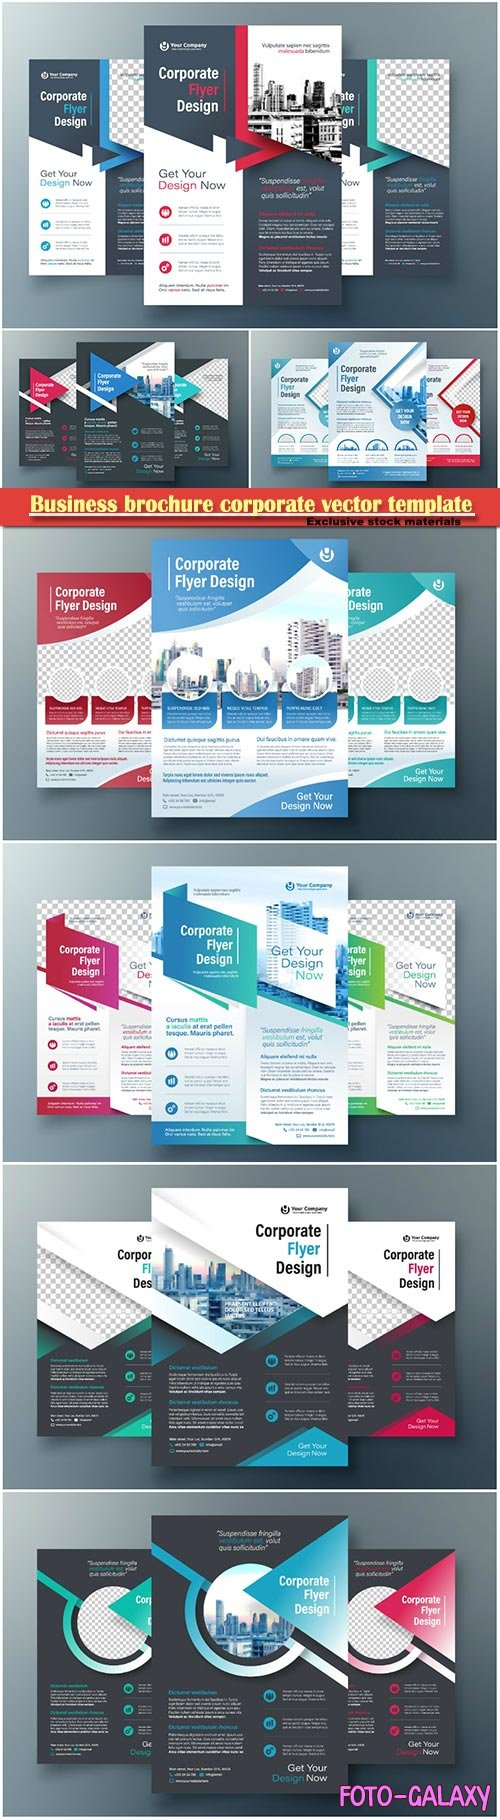 Business brochure corporate vector template, magazine flyer mockup # 11